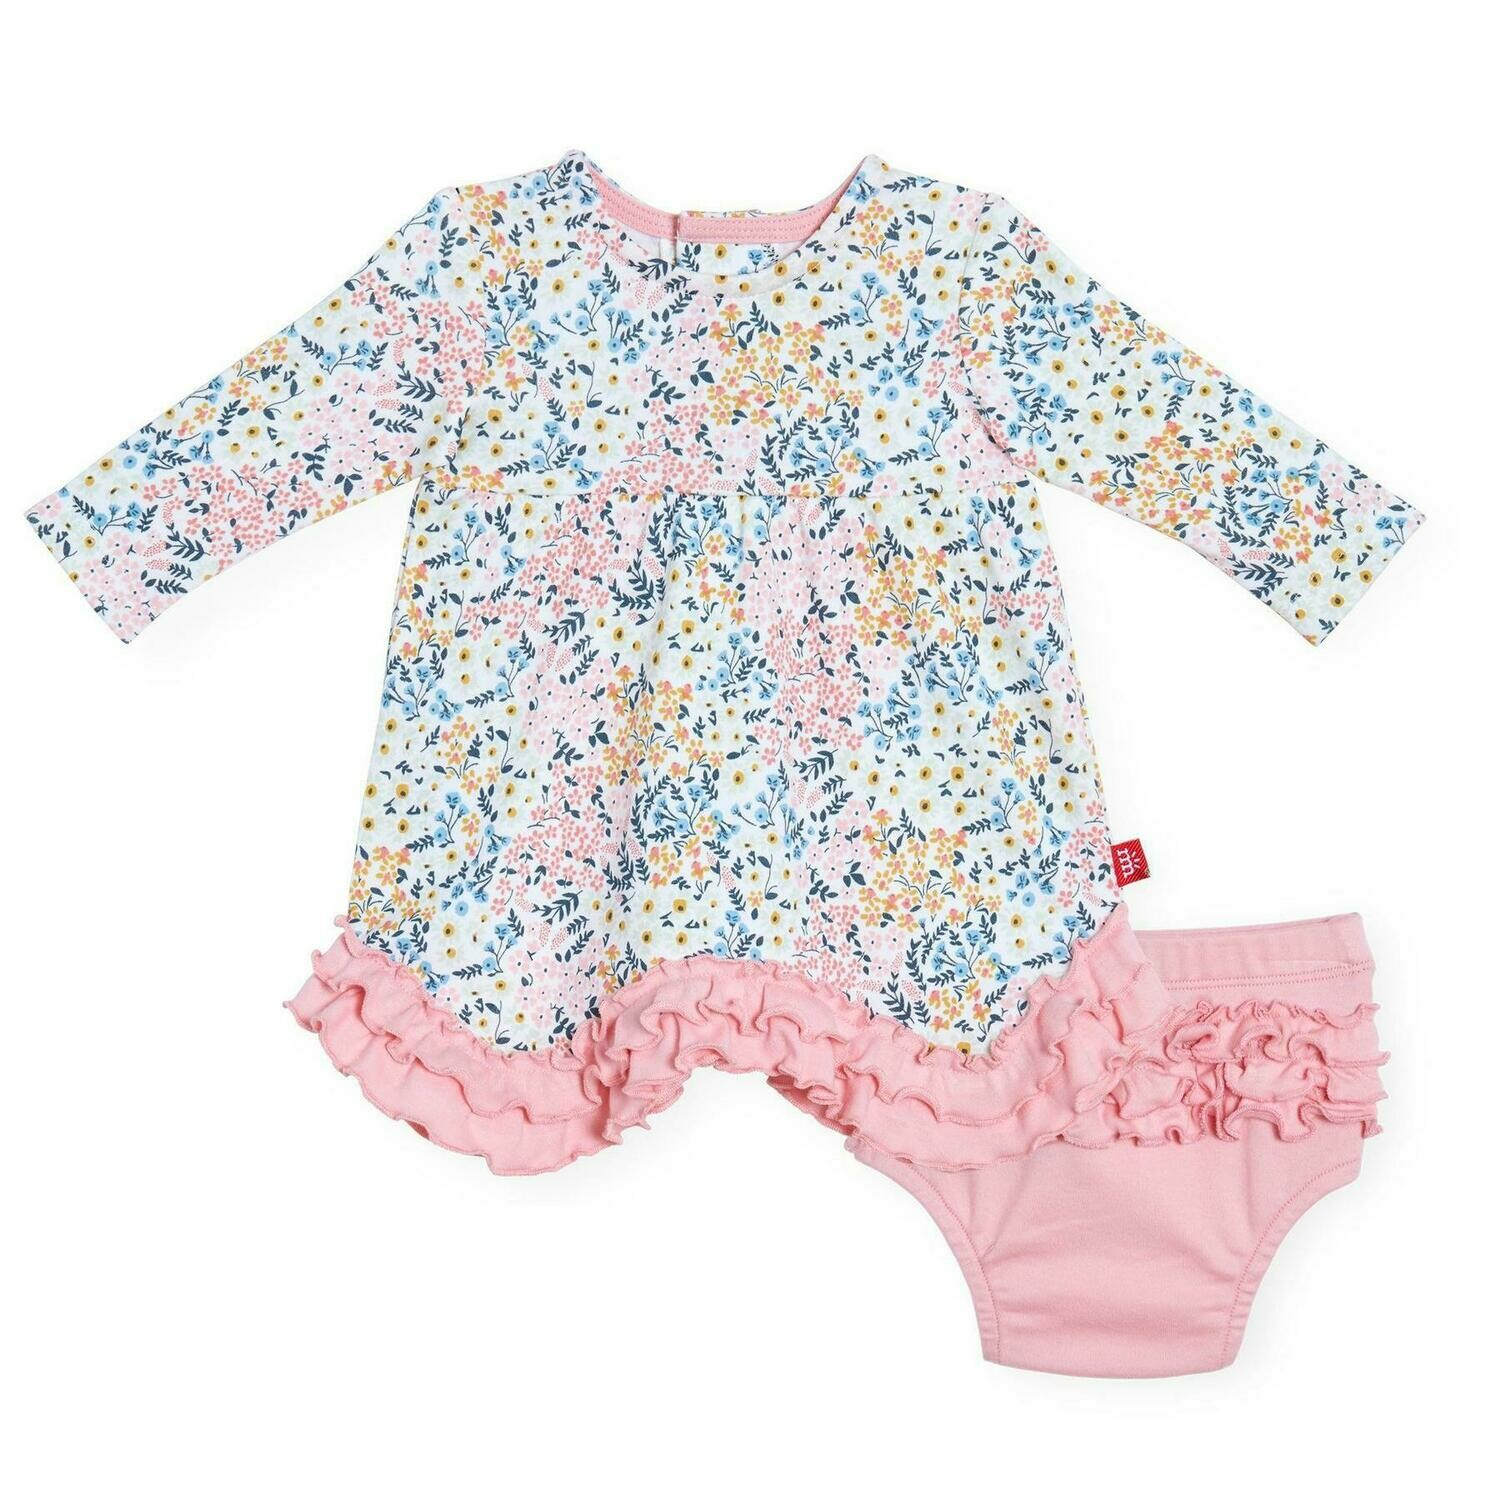 Chelsea Dress and Diaper Cover